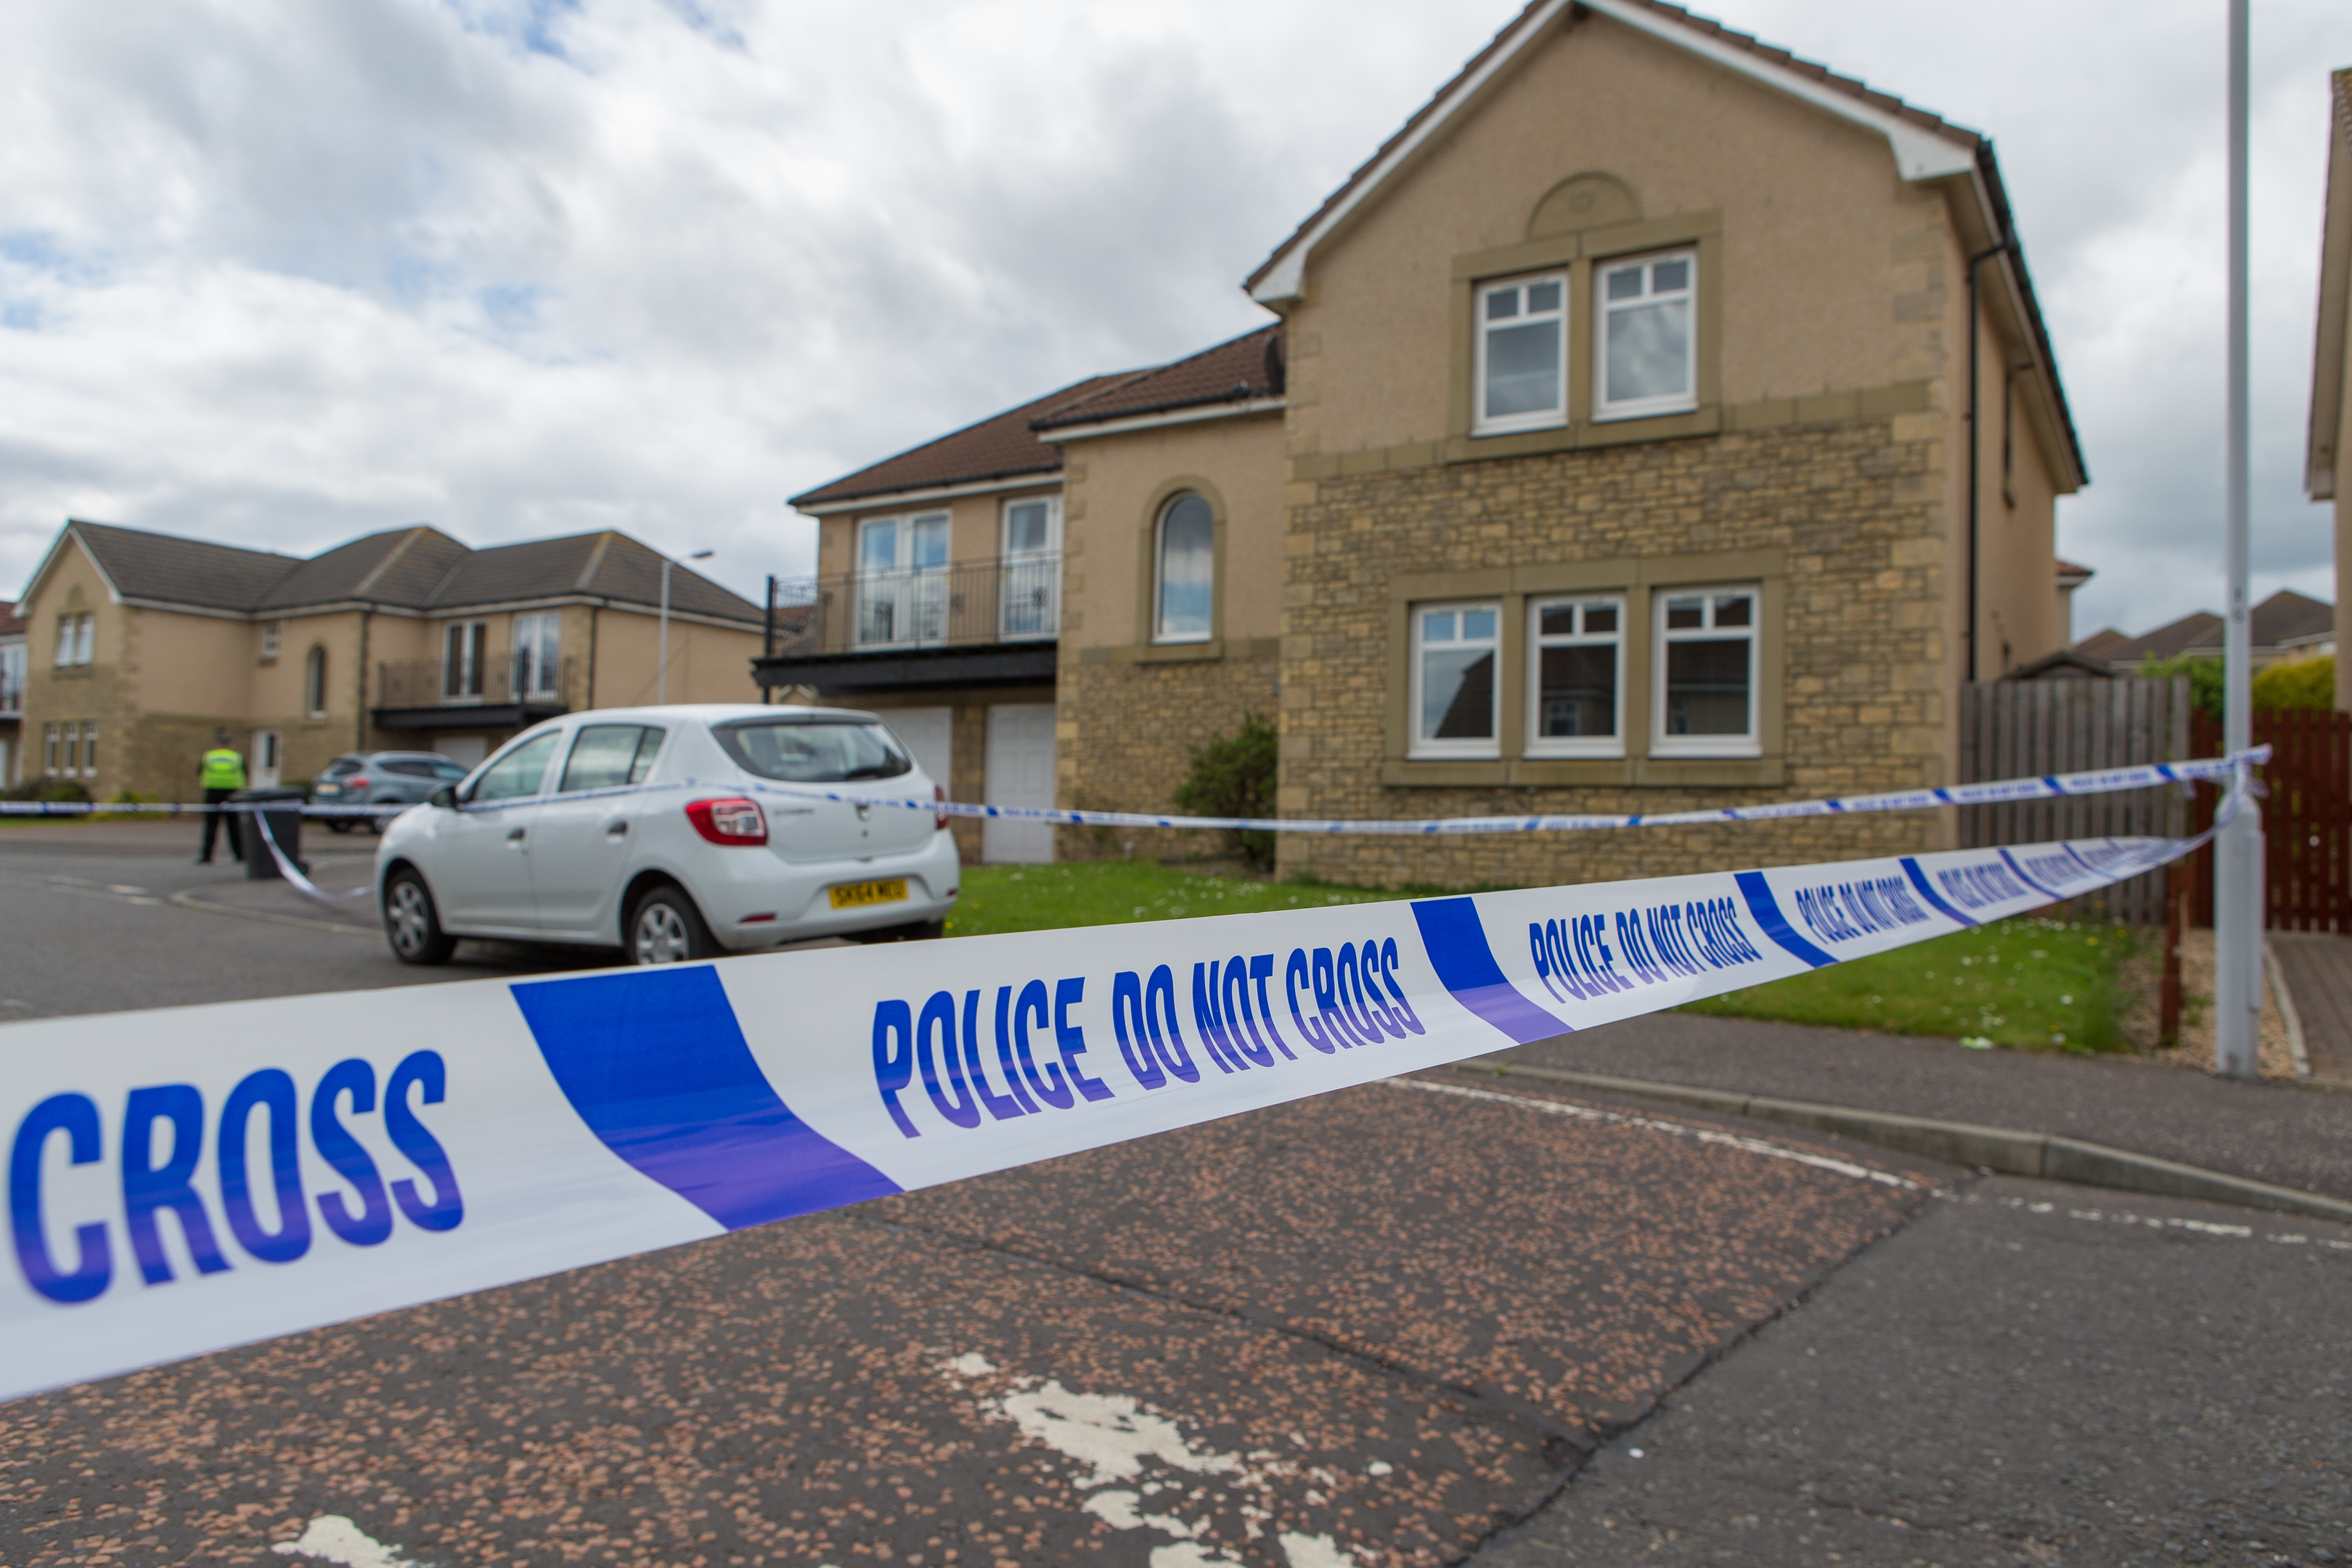 Police cordoned off the honme on Craigfoot Road  after the incident.